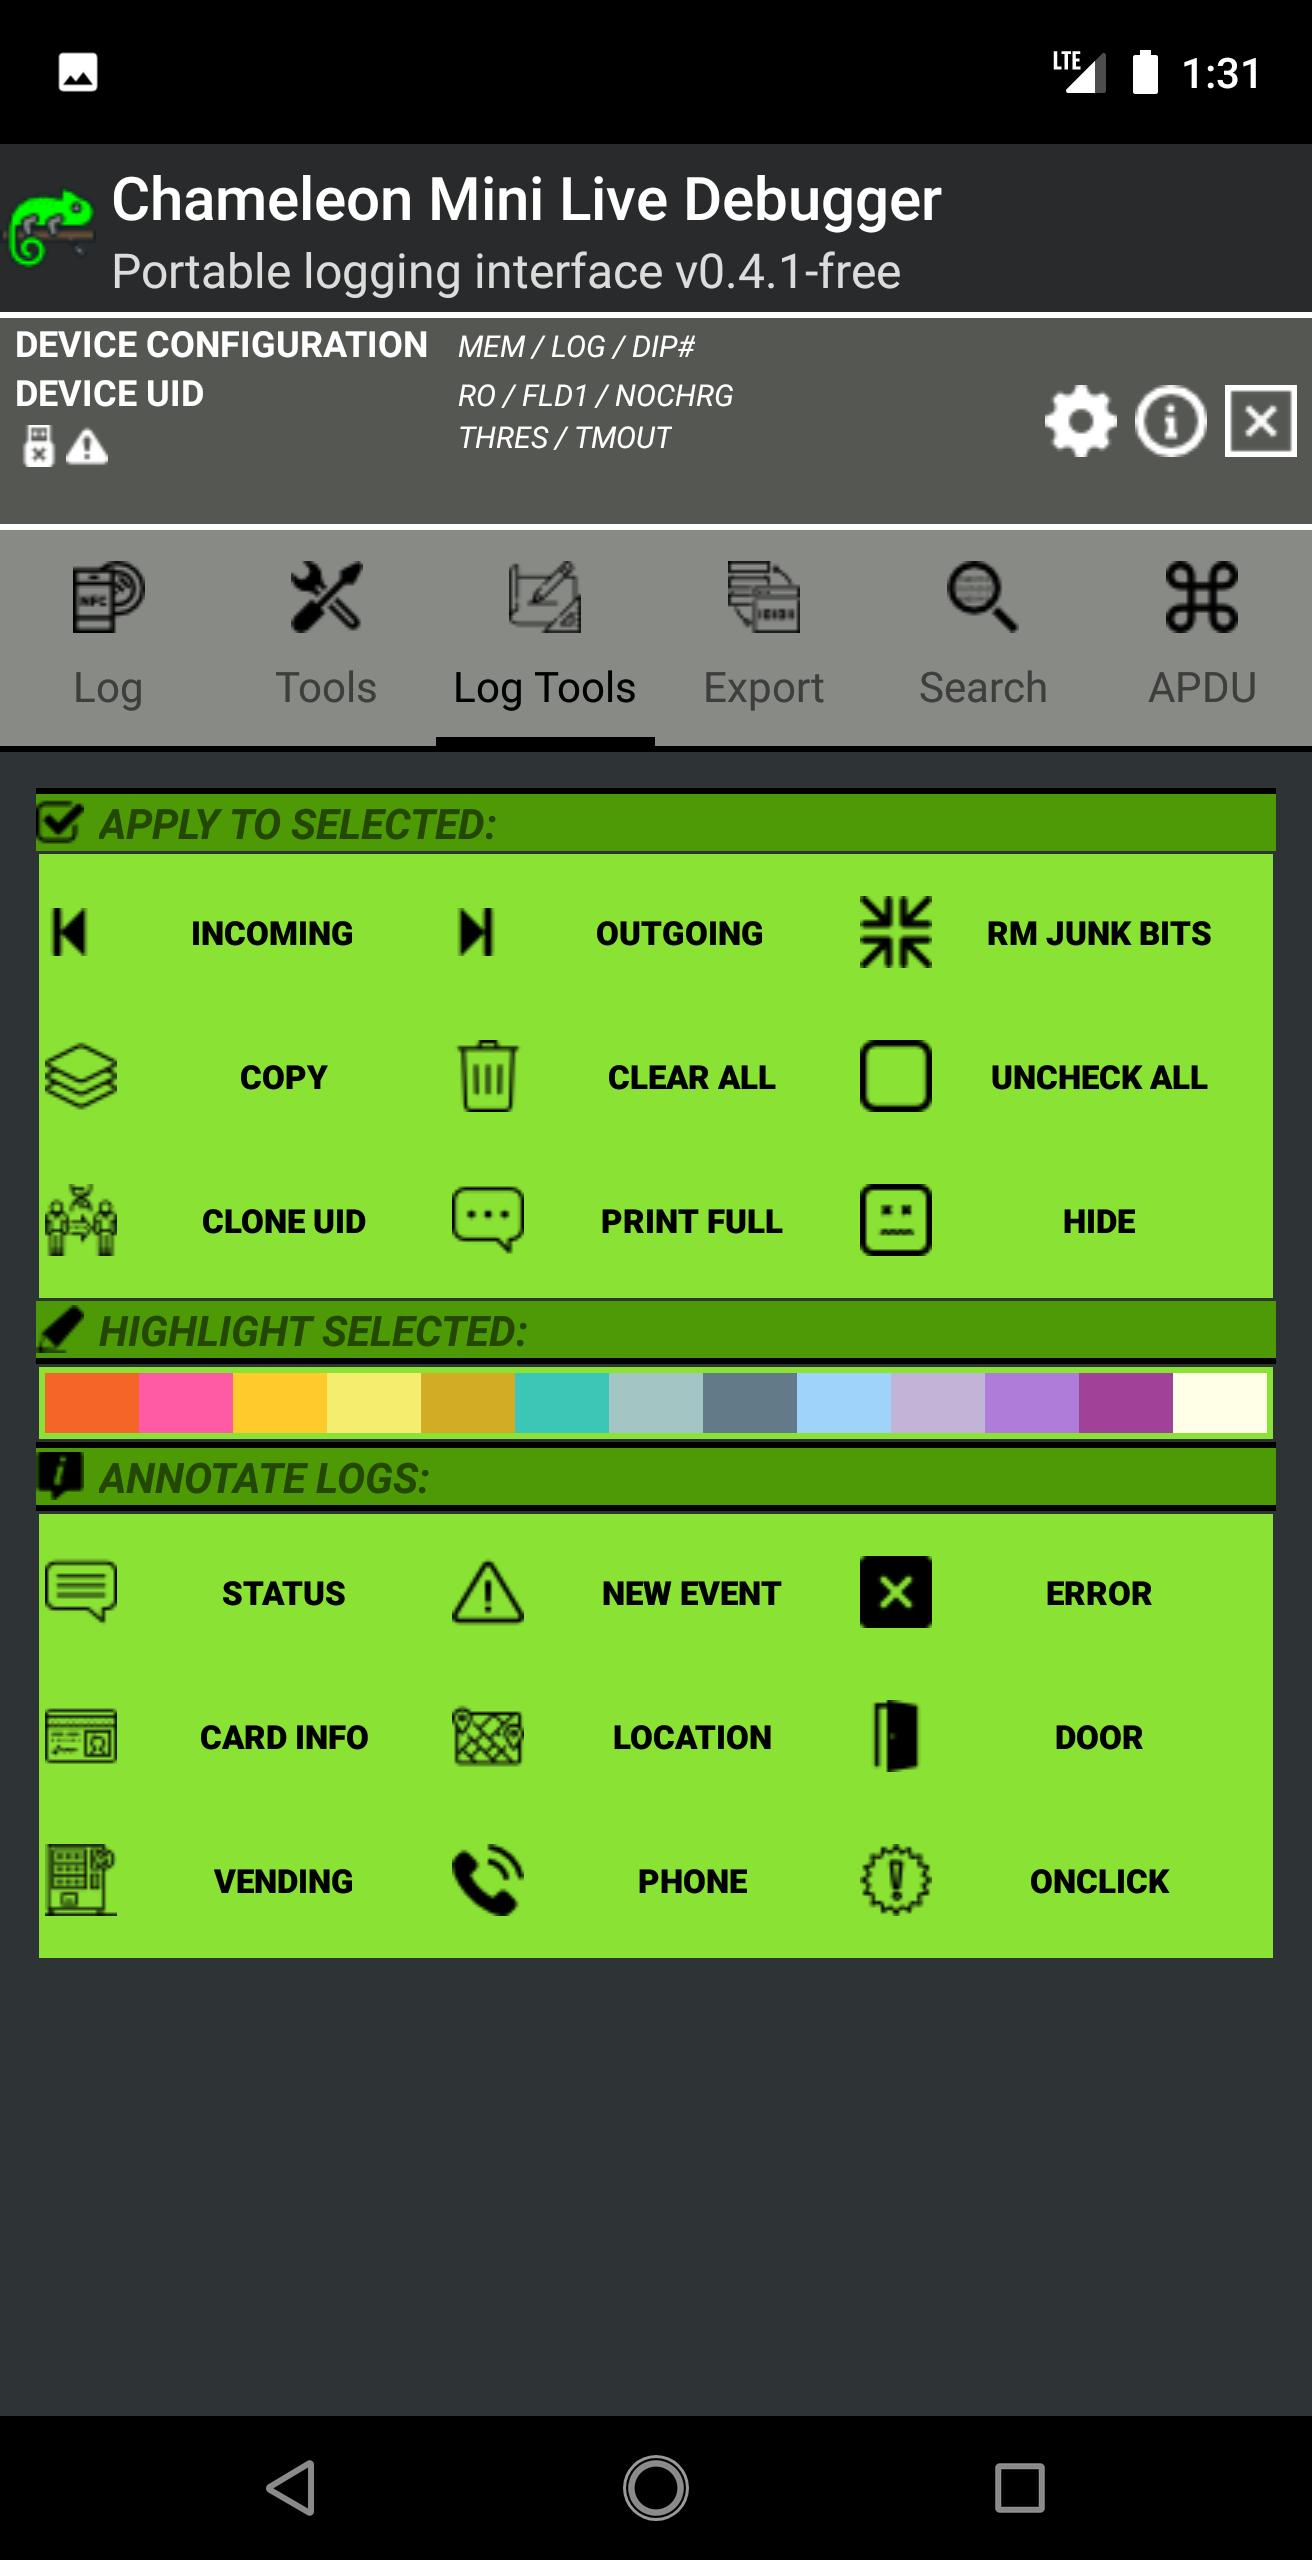 Chameleon Mini Live Debugger for Android - APK Download